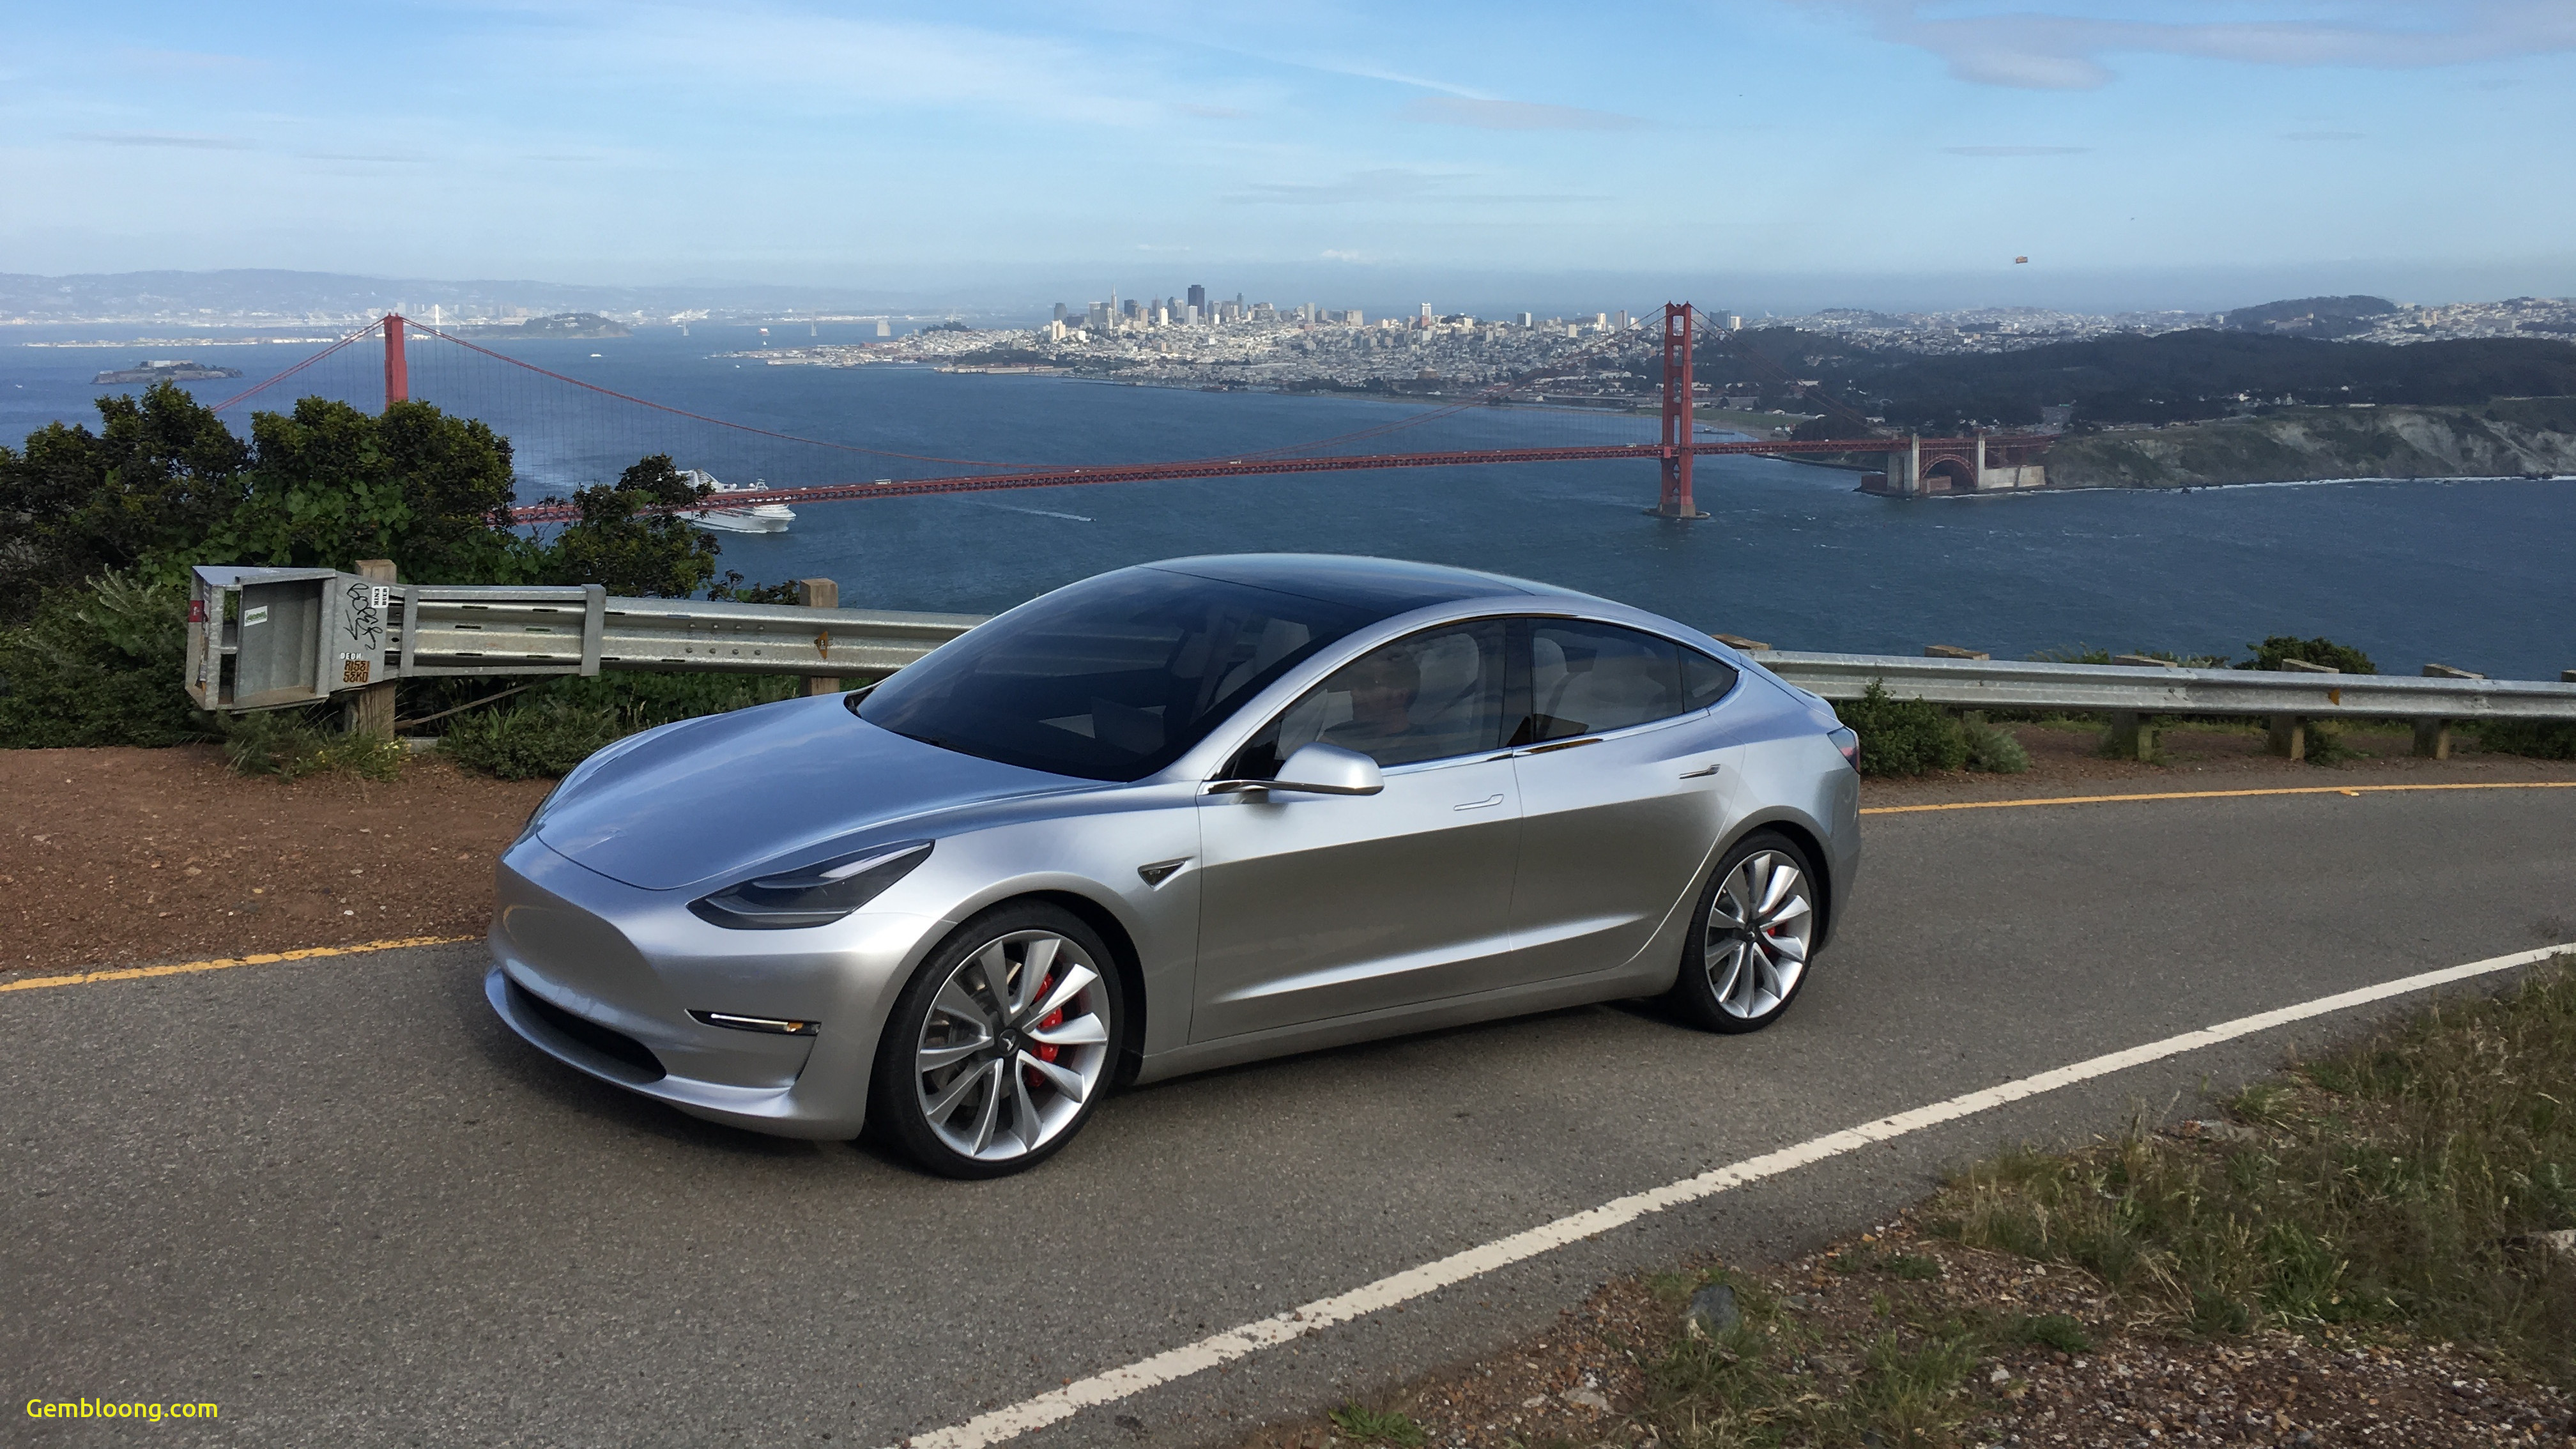 Tesla Model 3 Price Luxury Tesla Model 3 Uk Price Specs 10 Things You Need to Know